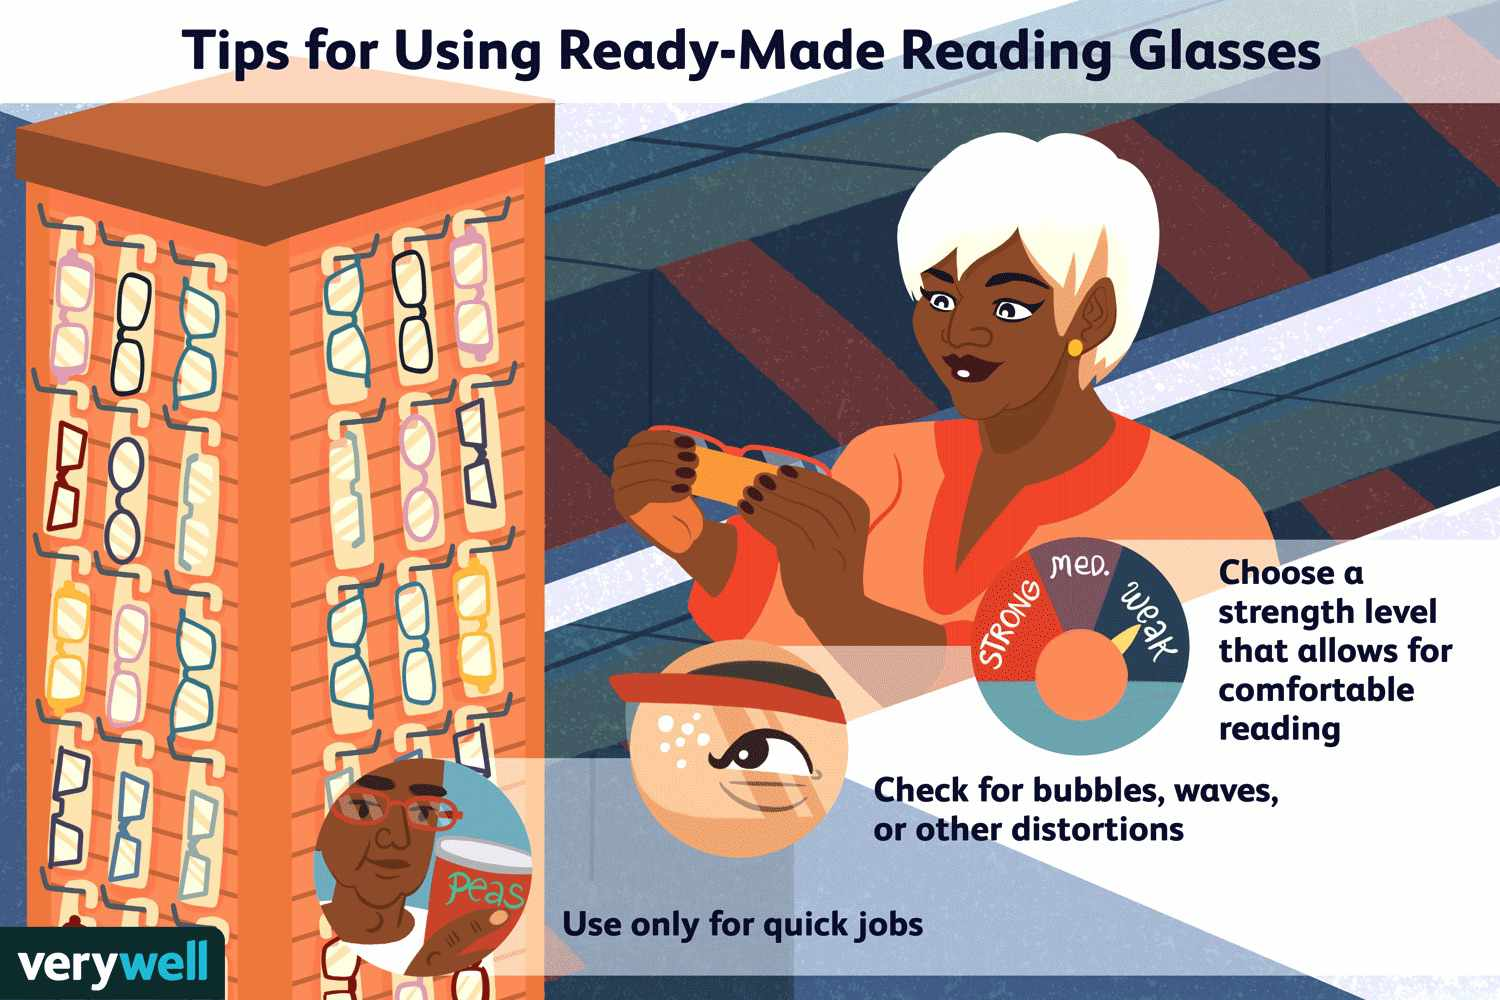 tips for using ready-made reading glasses